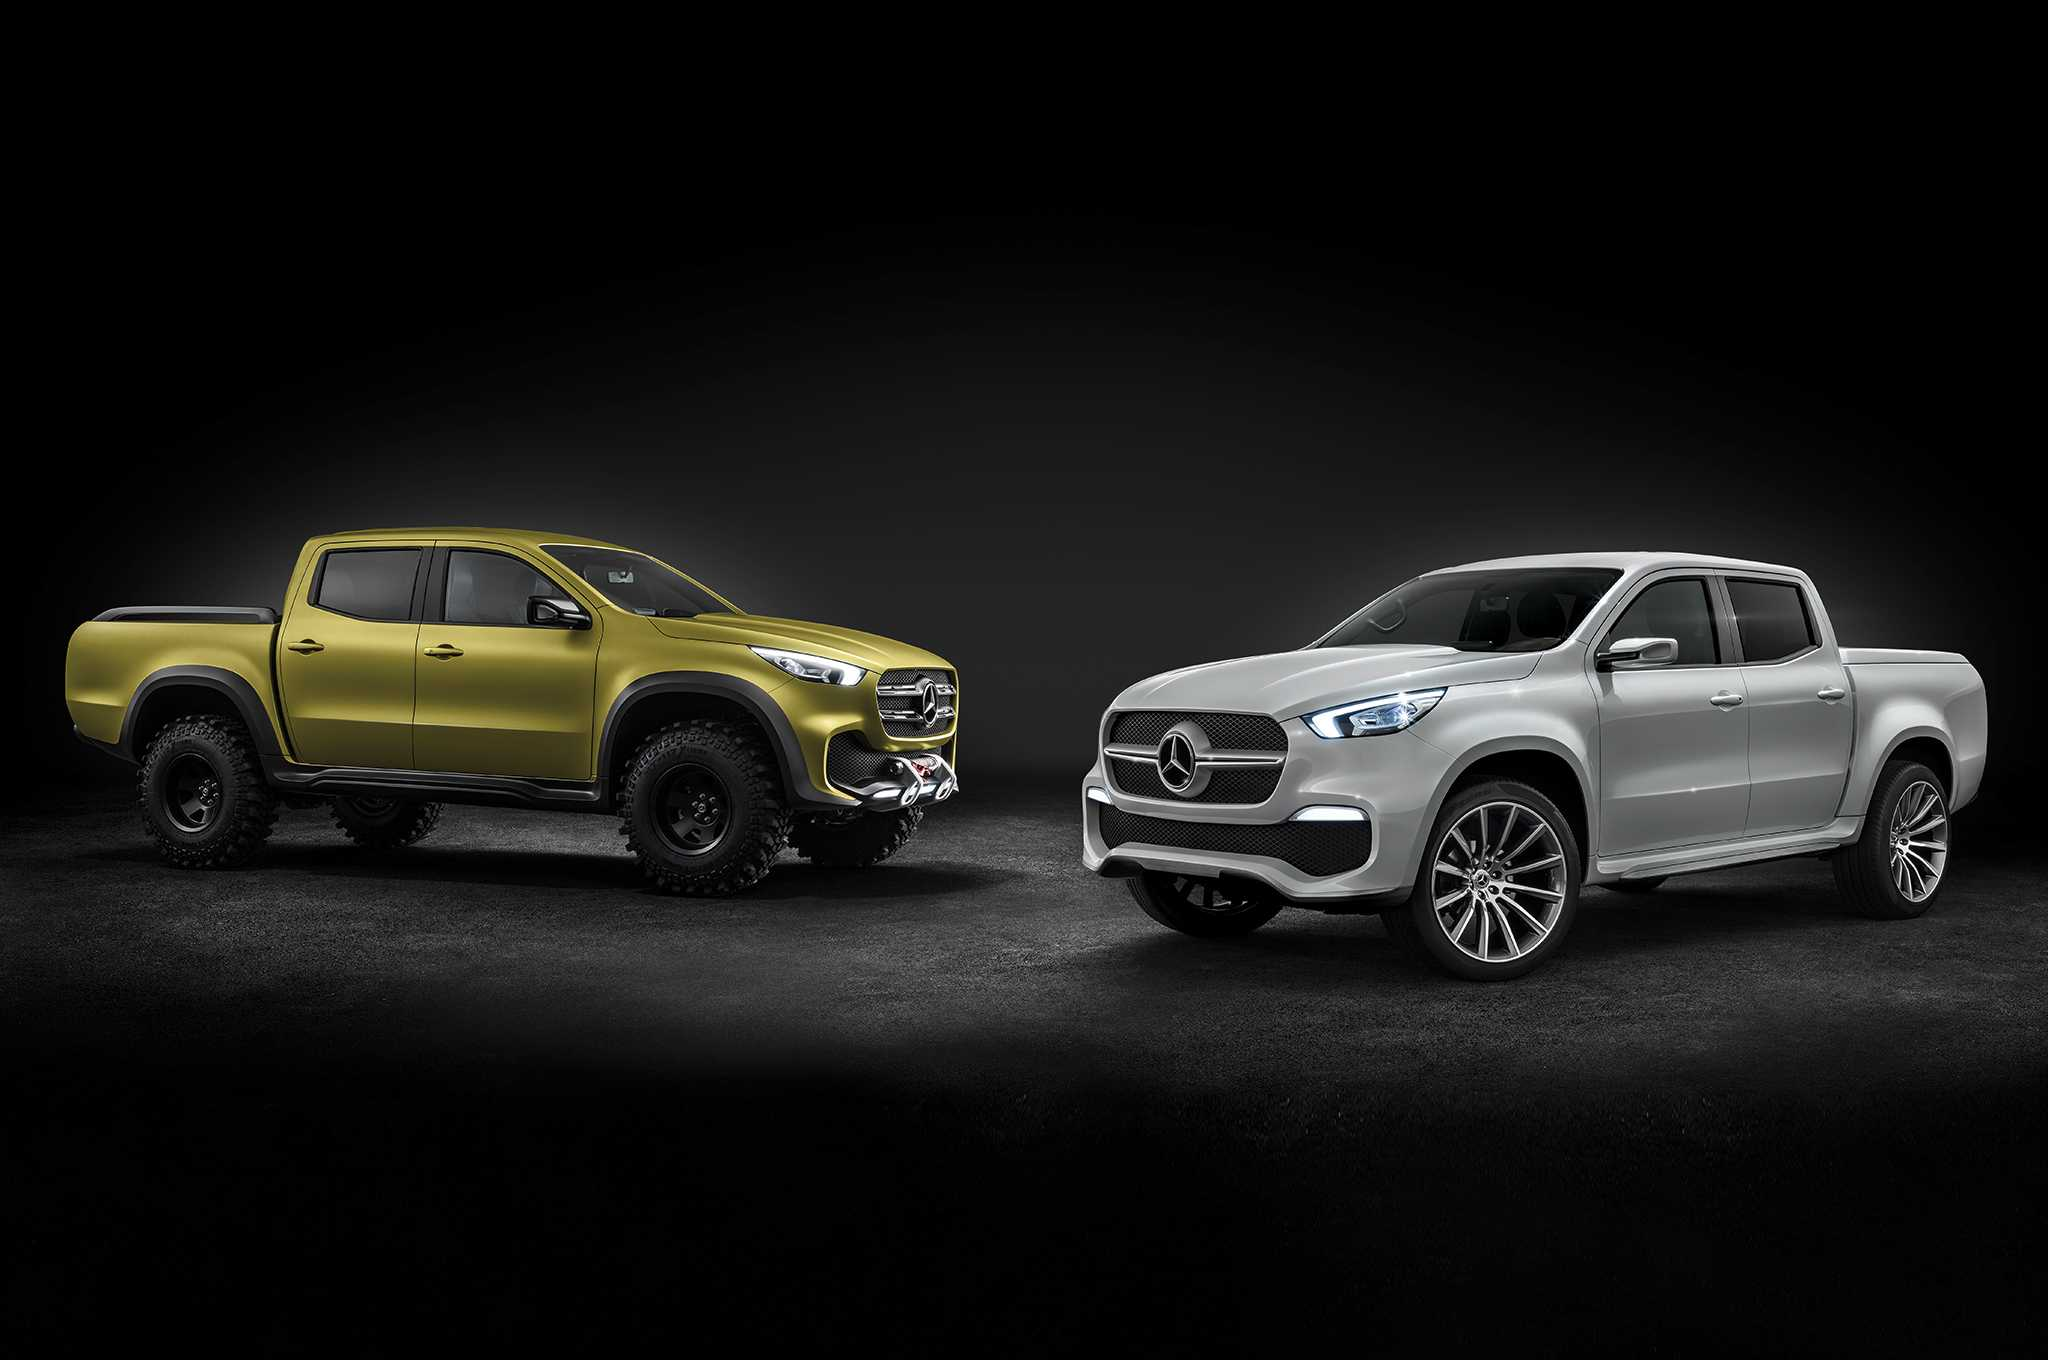 Mercedes Benz X-Class Pickup Truck Models Unveiled at Sweden